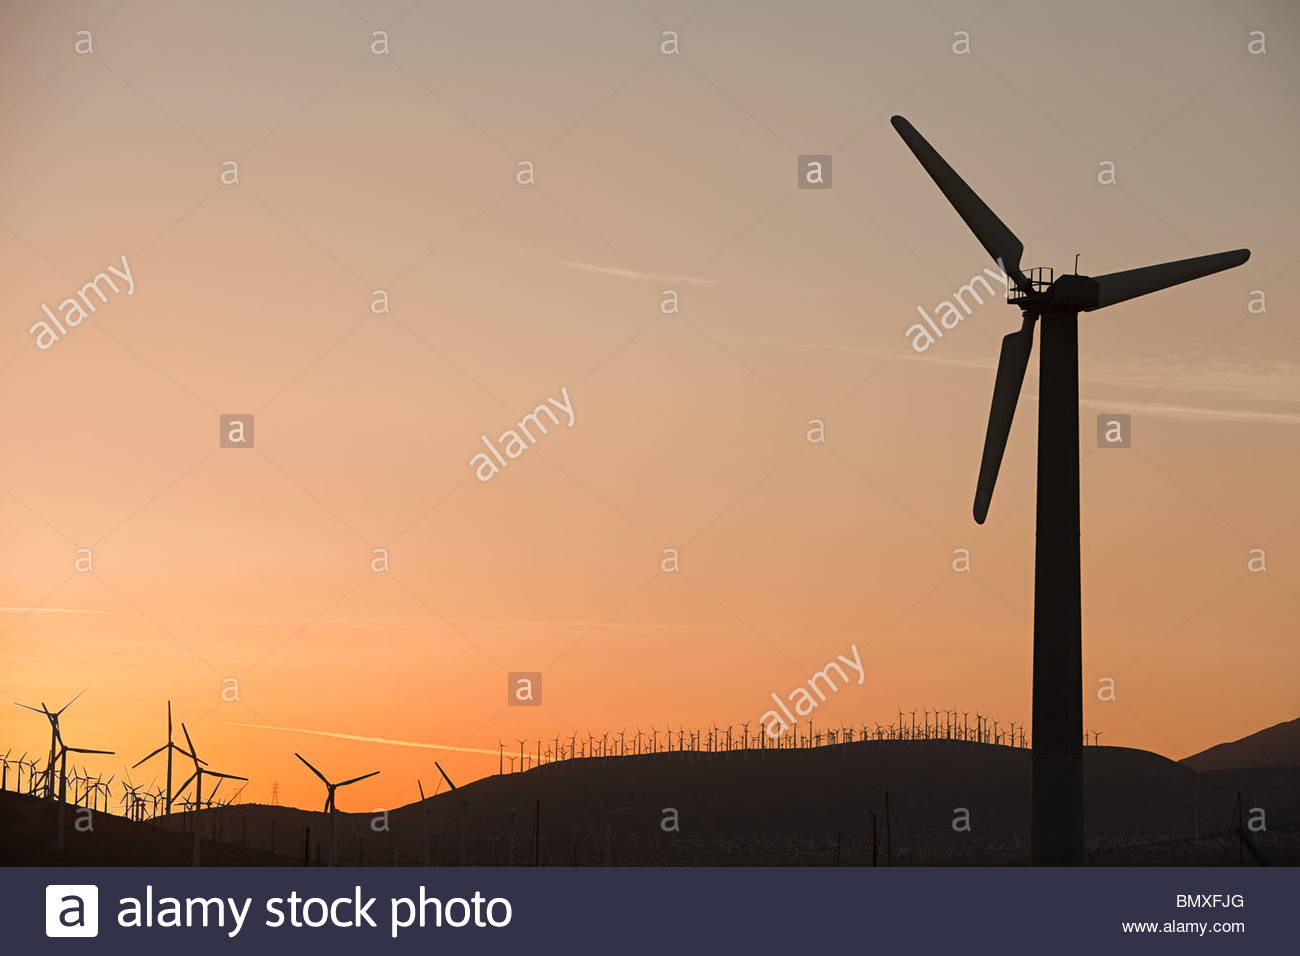 Silhouettes of wind turbines at sunset - Stock Image